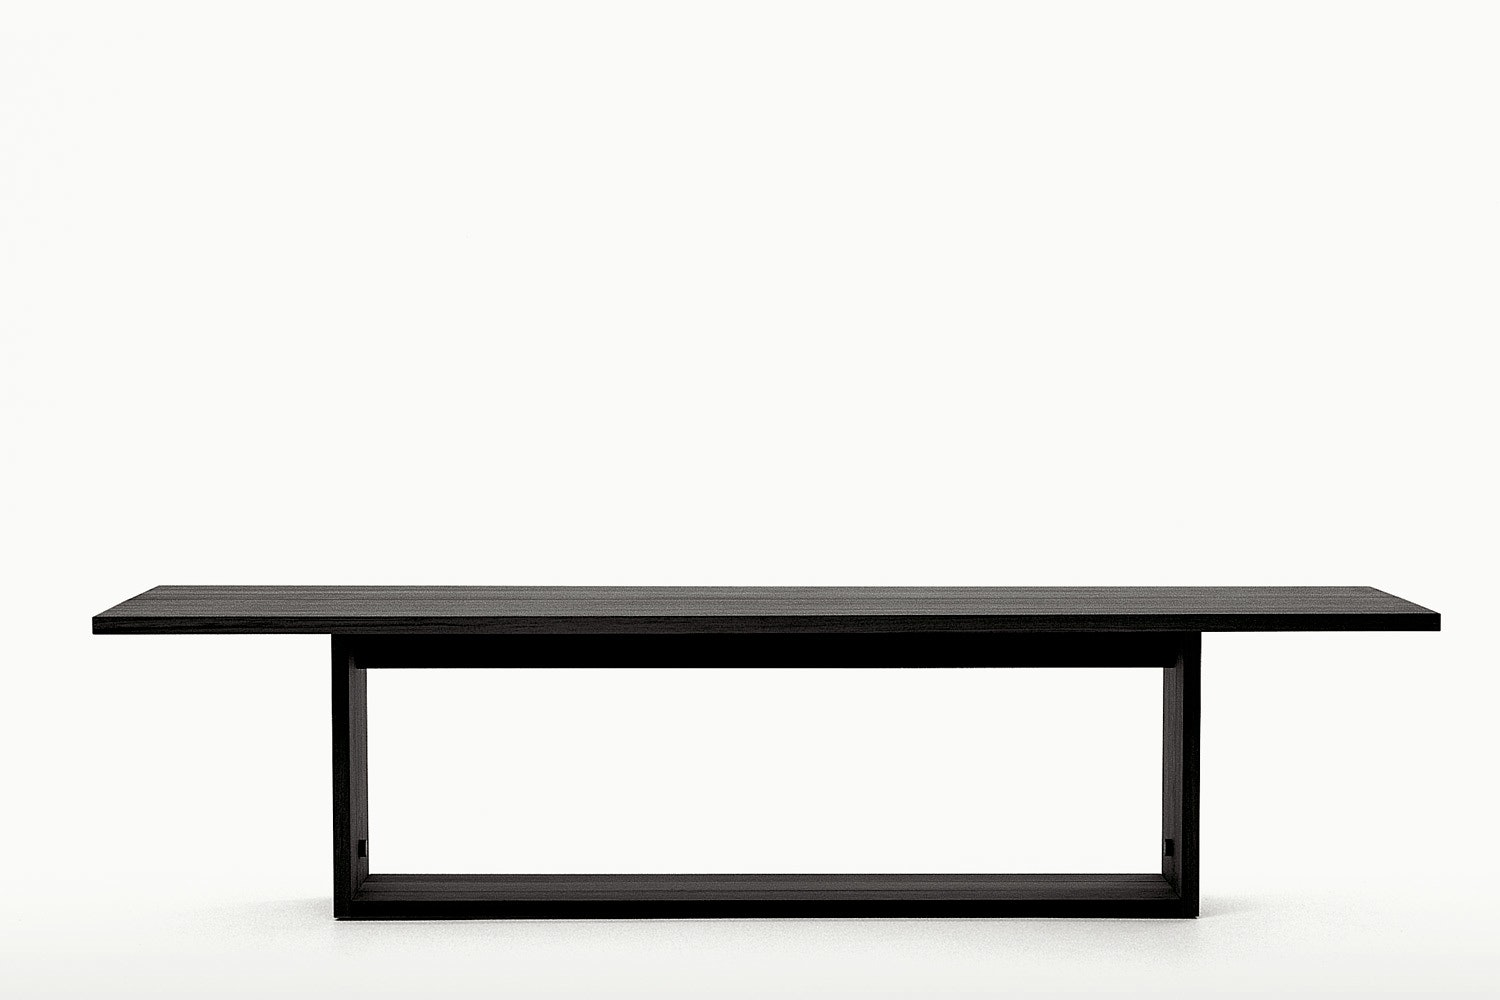 Argo Table by Antonio Citterio for Maxalto